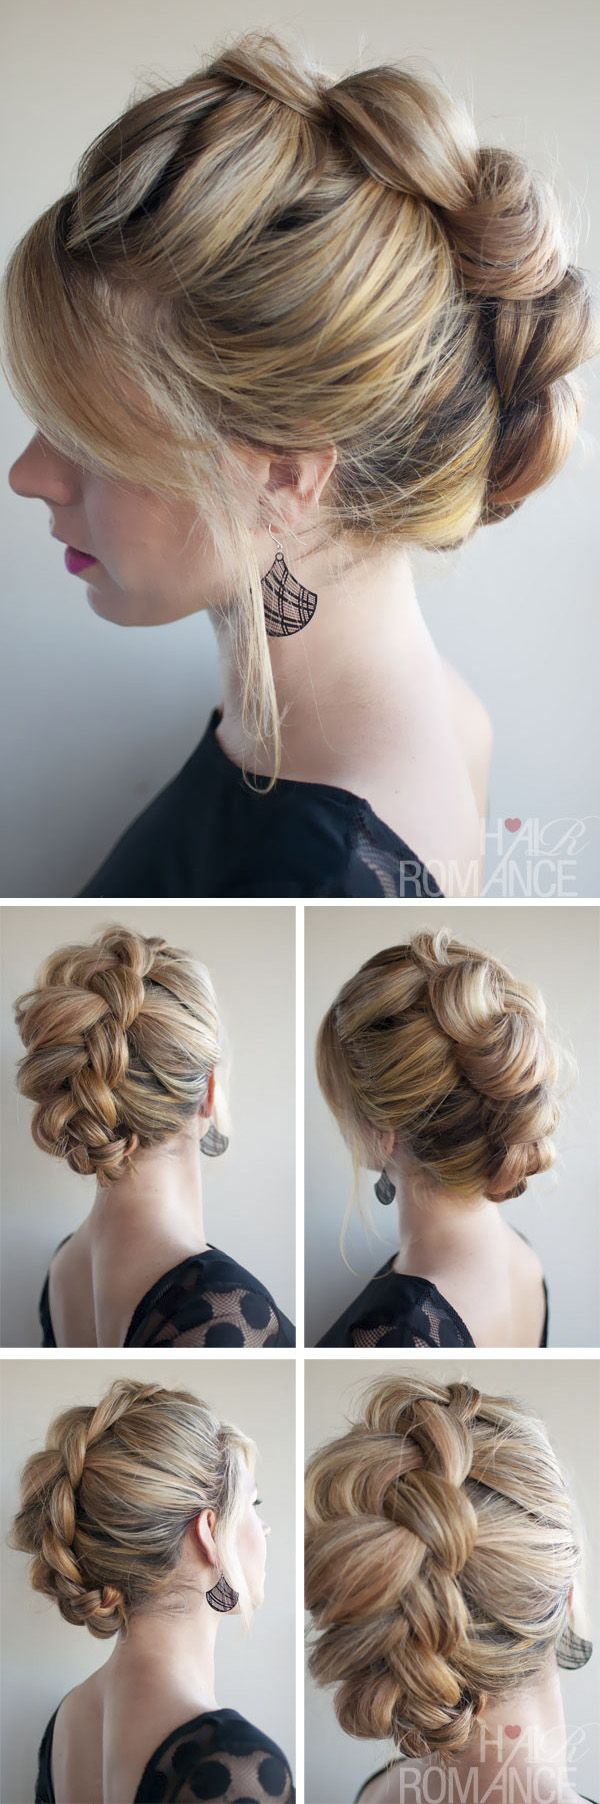 12 Awesome Formal Traditional: 25+ Great Ideas About Braided Faux Hawk On Pinterest